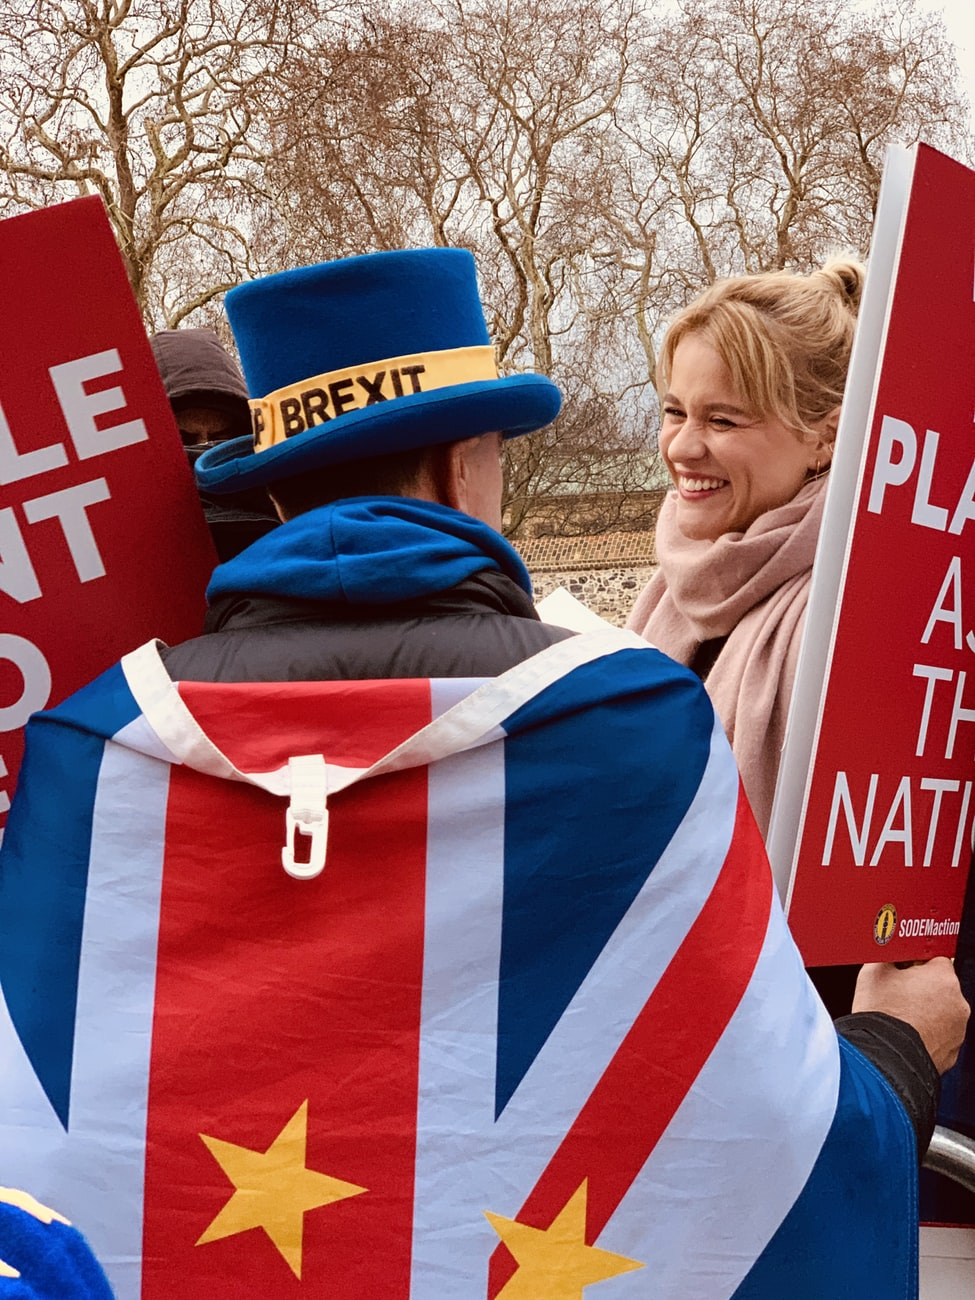 A picture of a man dressed in a top hat with Brexit on it draped in an EU flag. He is holding banners but text cannot be read